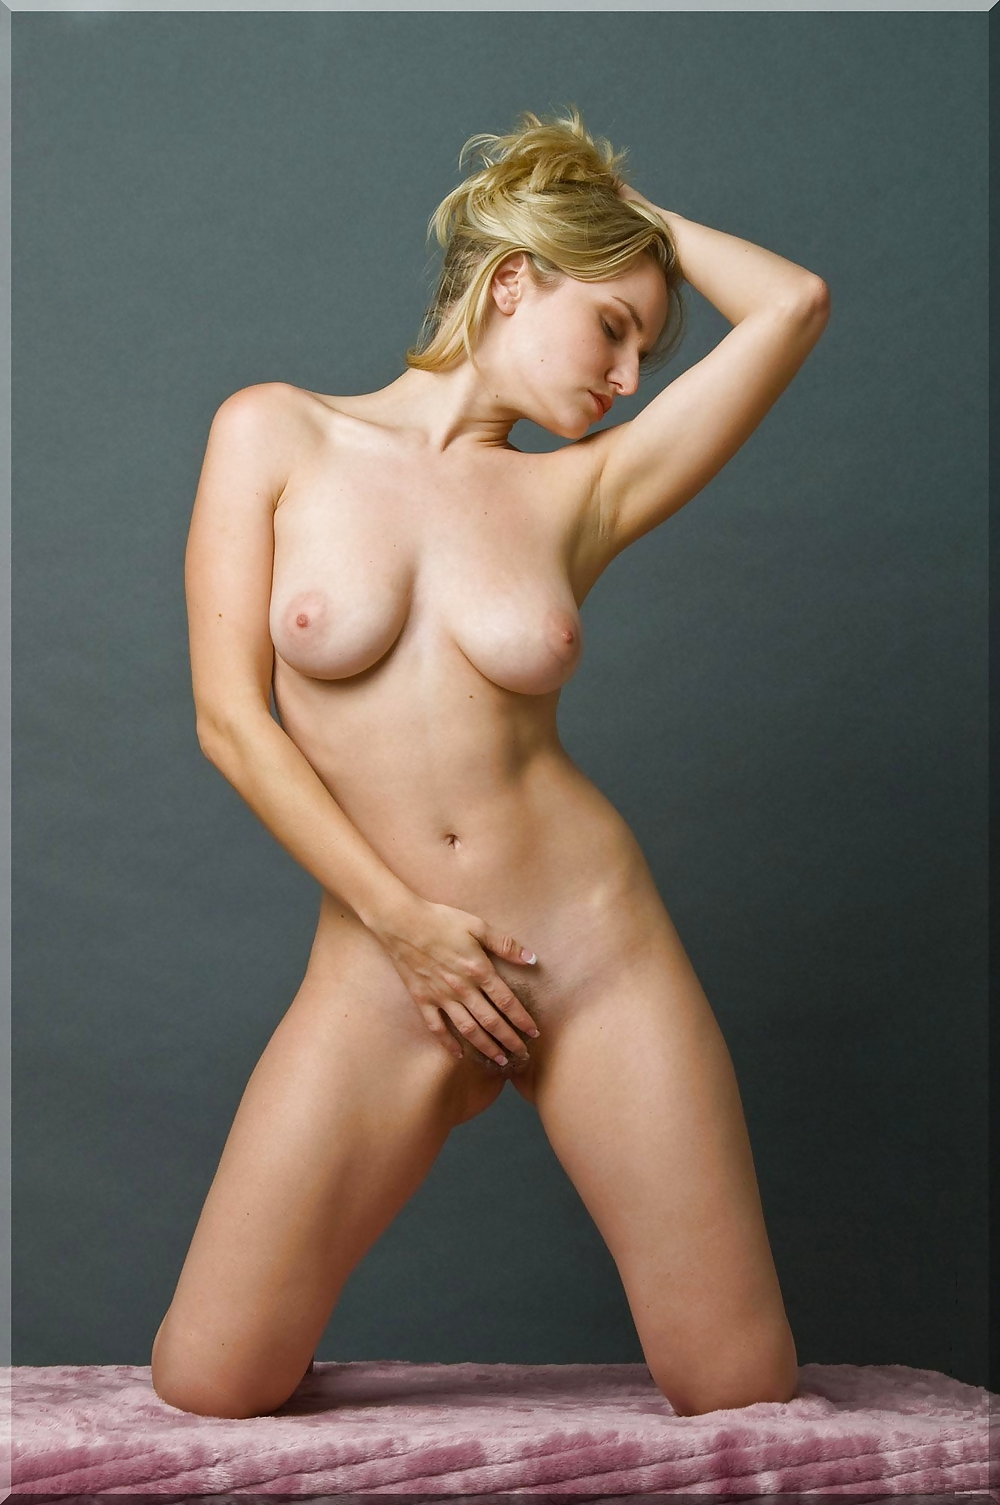 Connie carter nude pictures and pics